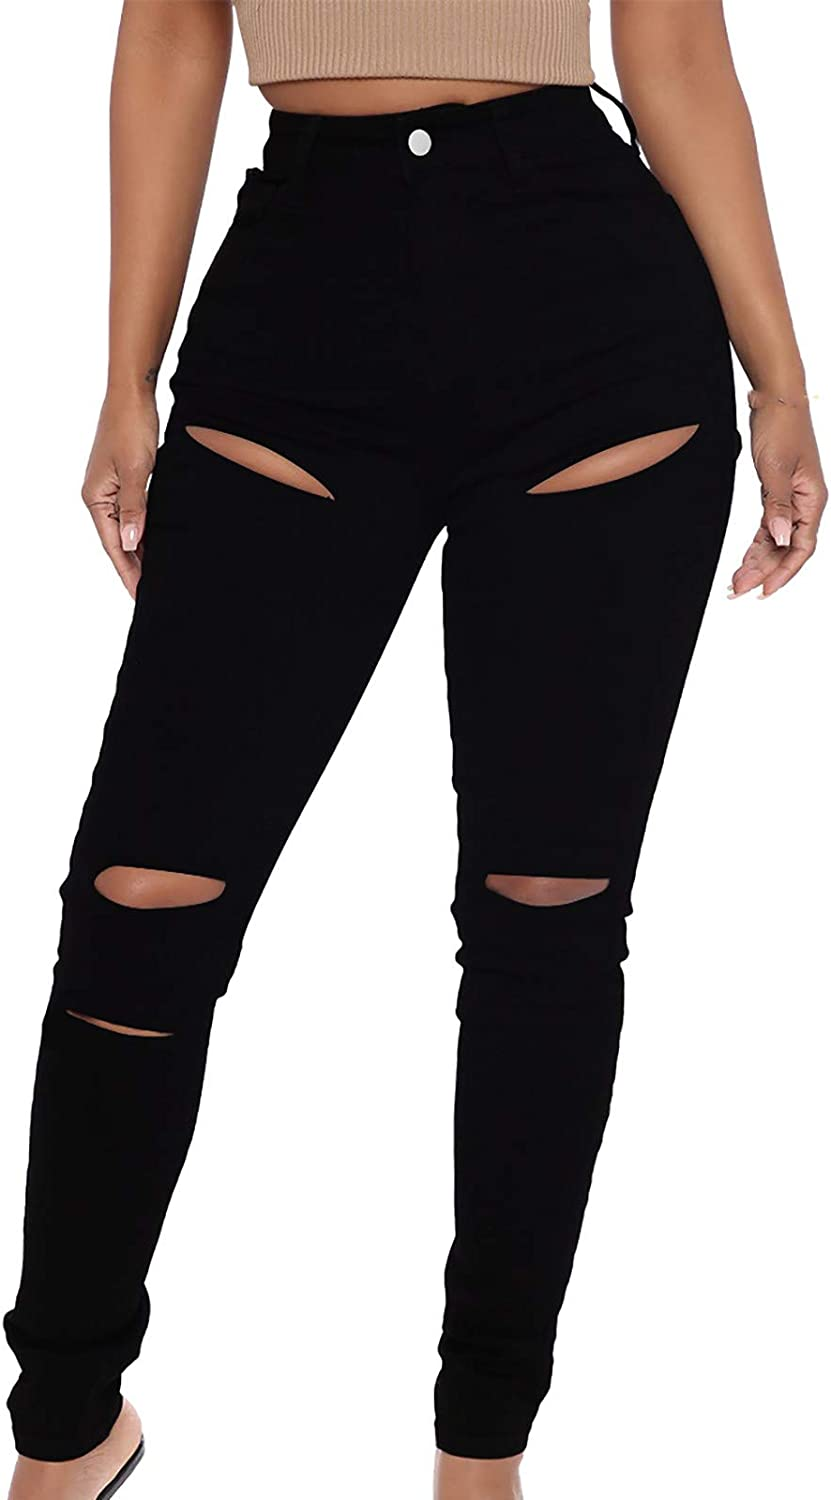 LONEA Women's Stretch Ripped Jeans Solid Color High Waist Slim Fit Pants Skinny Denim Pants